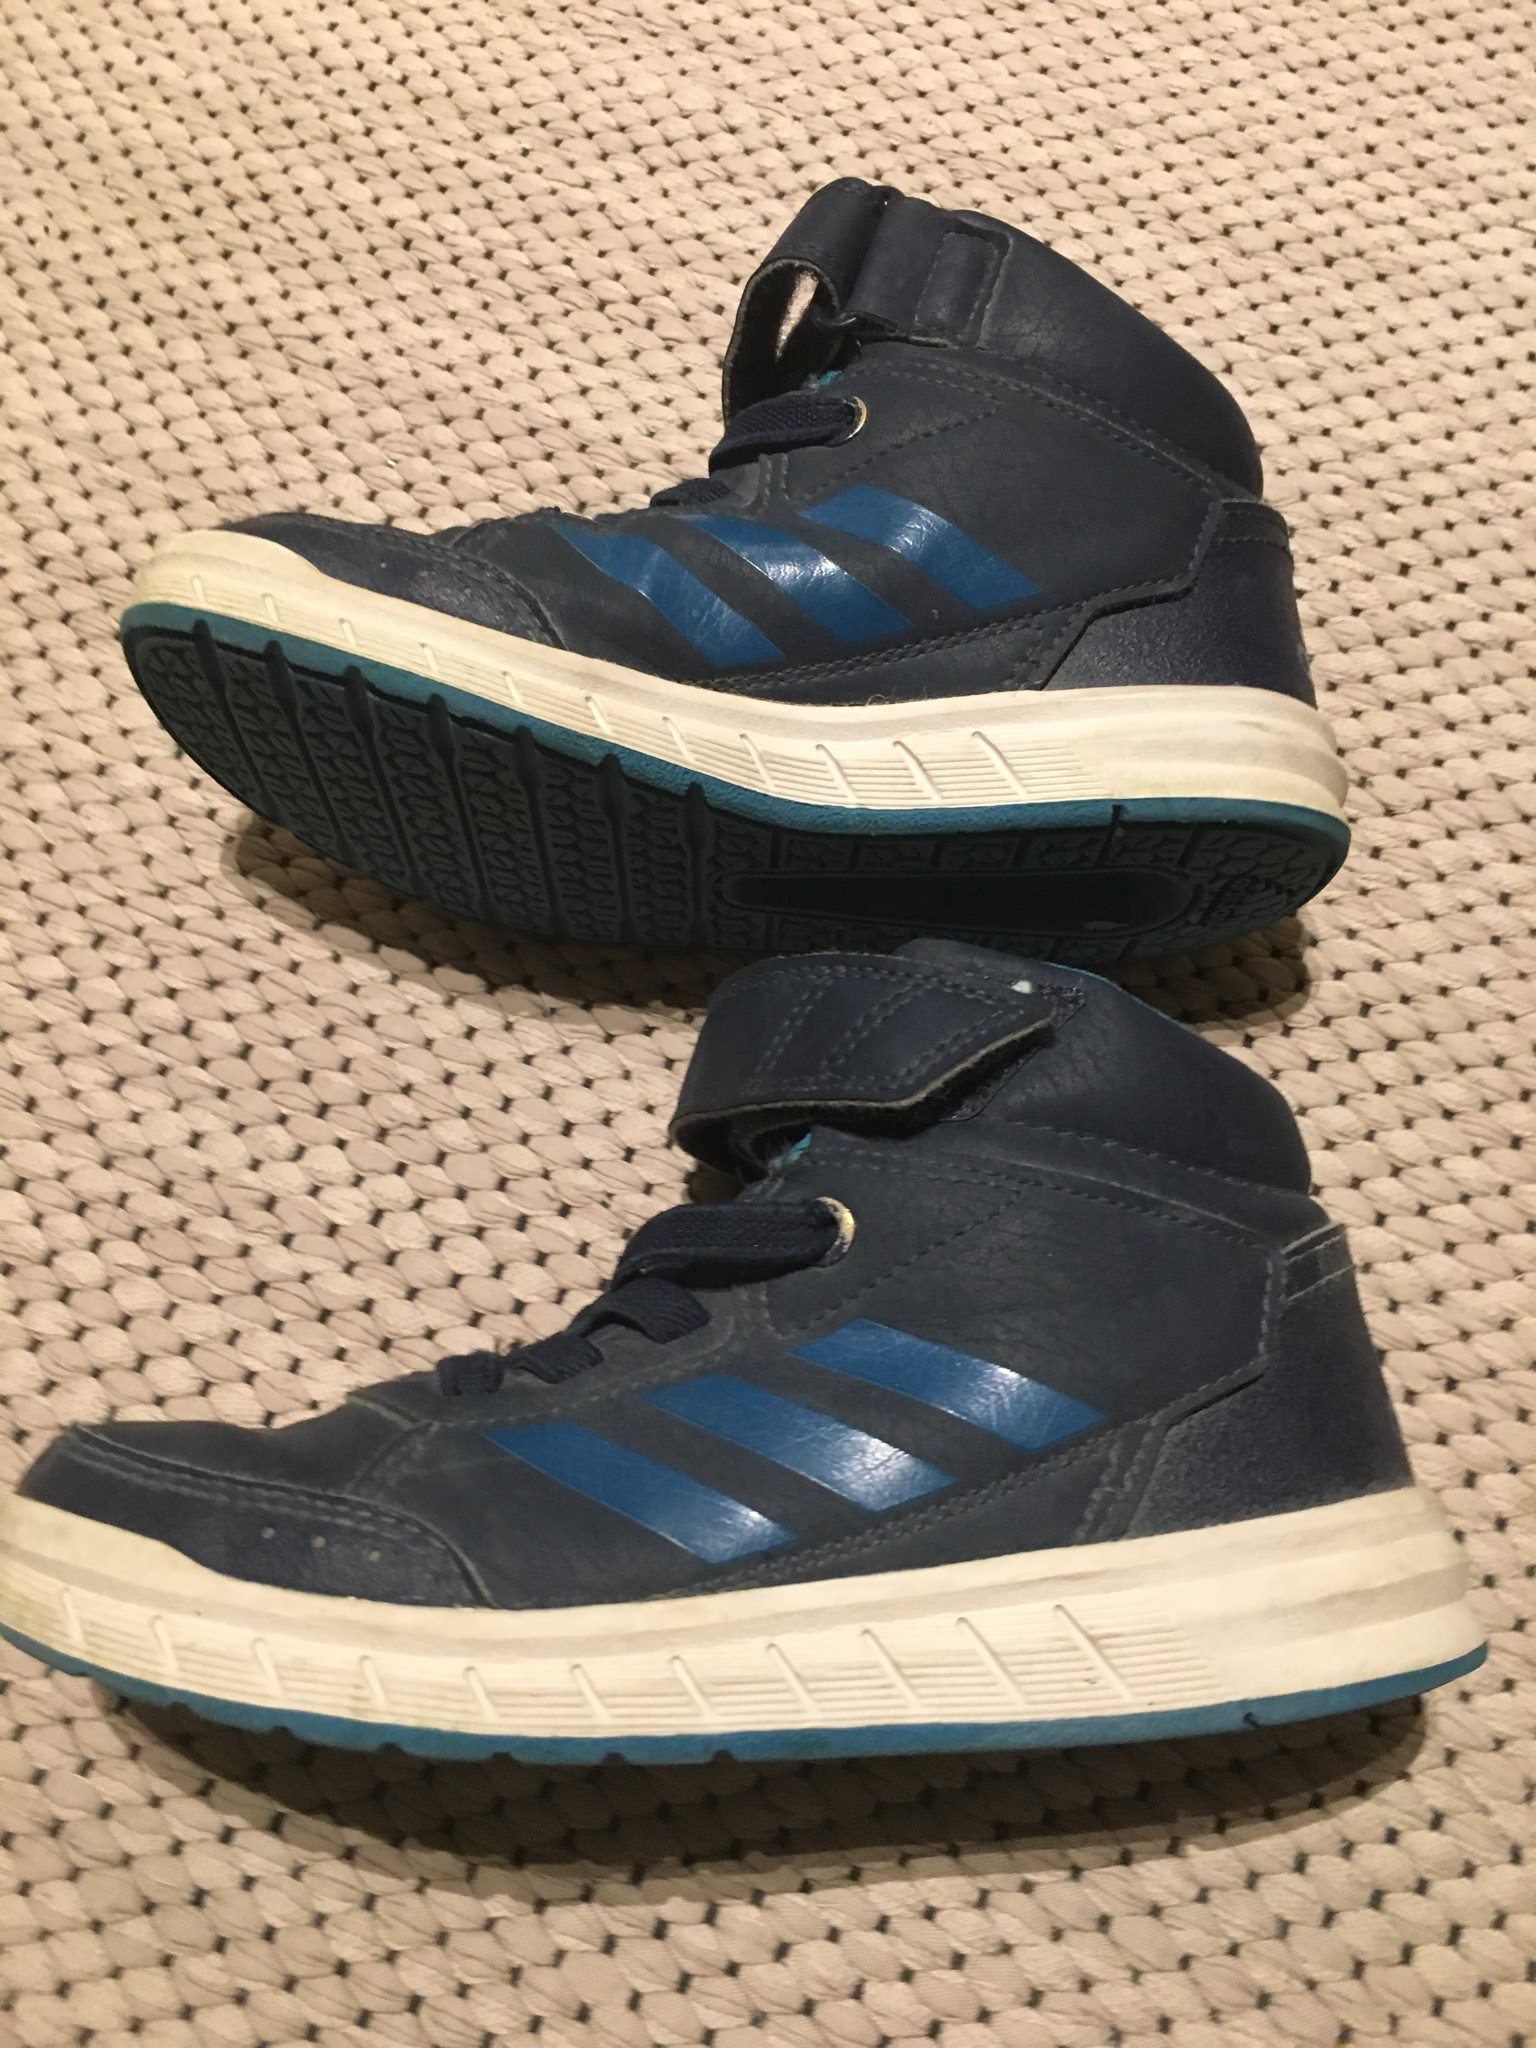 outlet store 051f4 e267e Fodrade sneakers i skinn stl 30 från Adidas